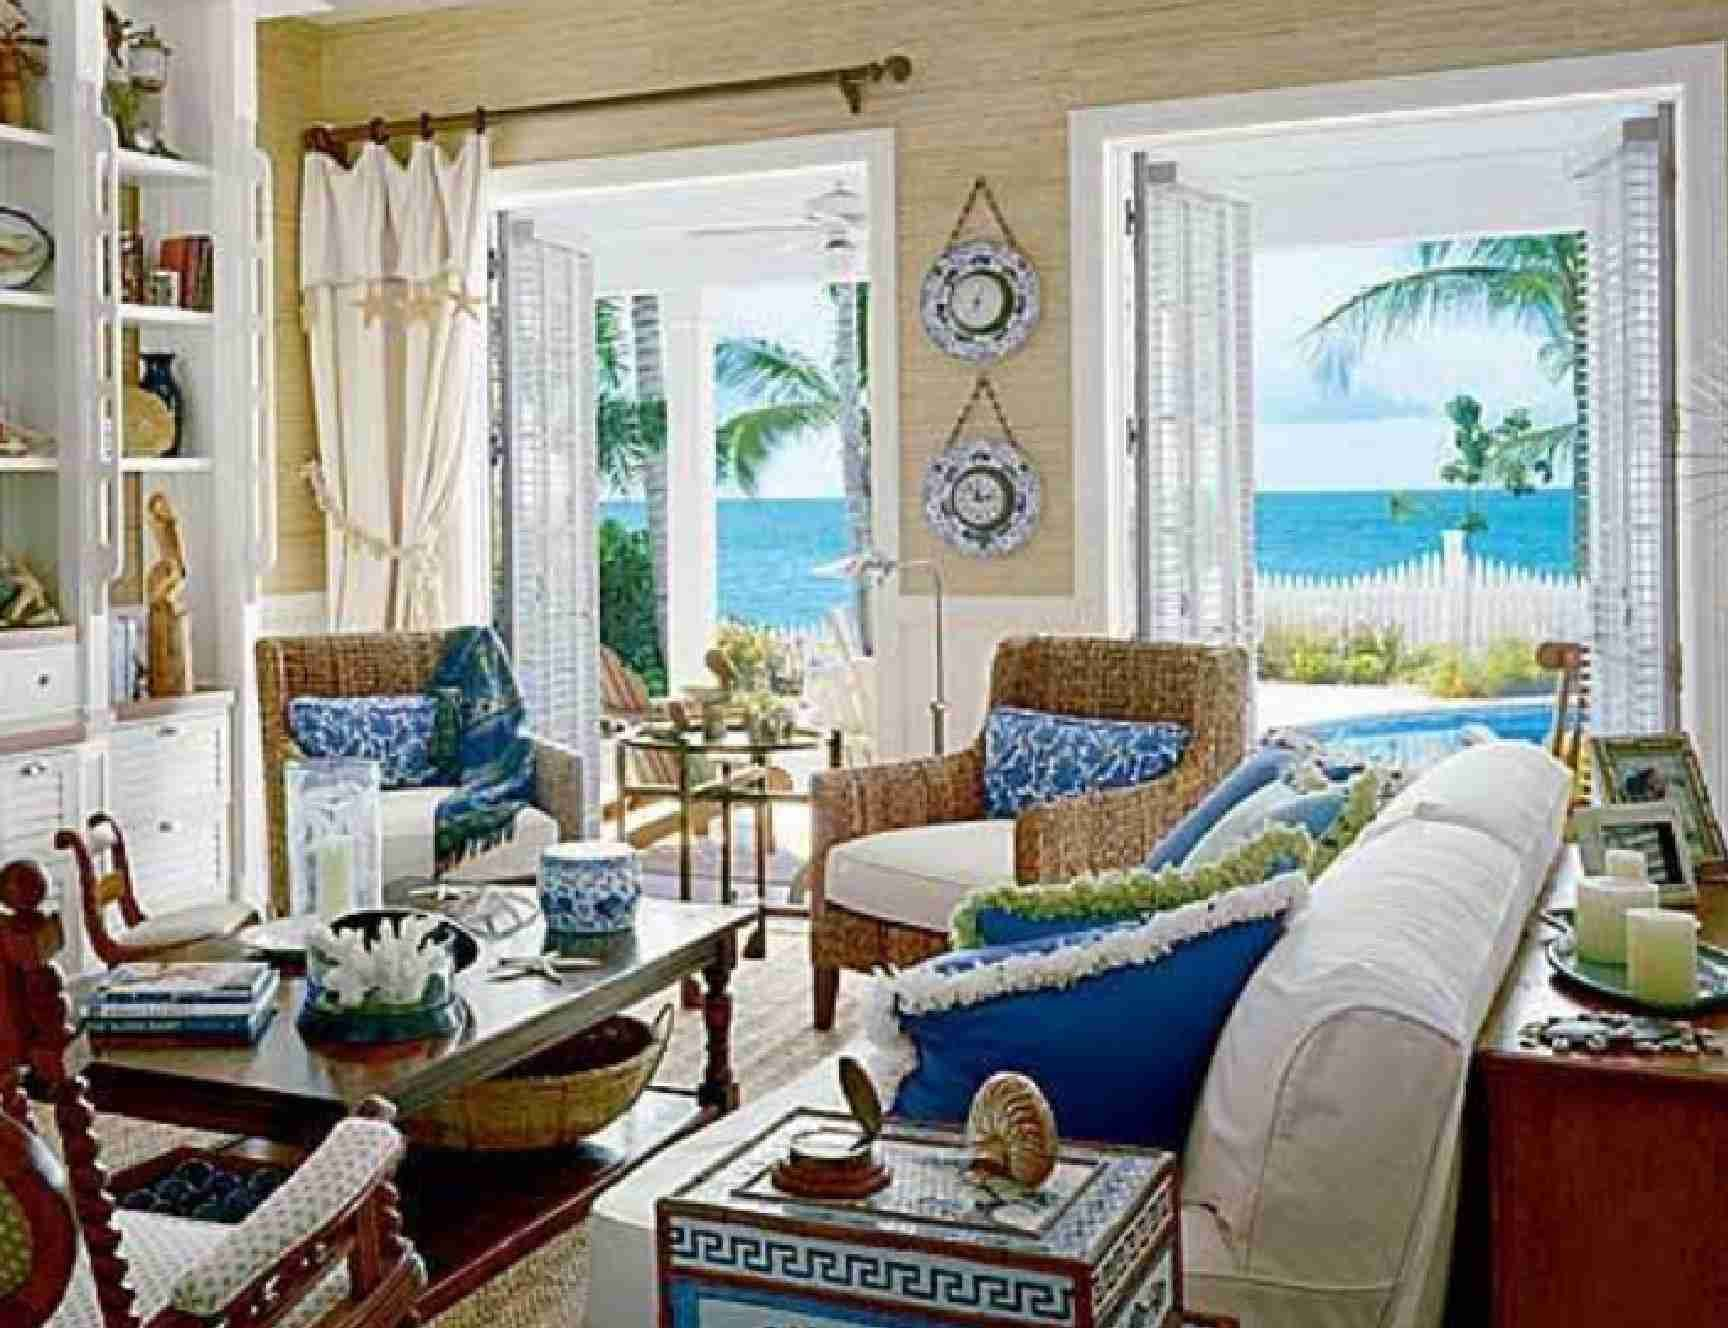 Beach Themed Living Room Design Pleasing Google Image Result For Httpwwwhomeinnenwpcontent 2018